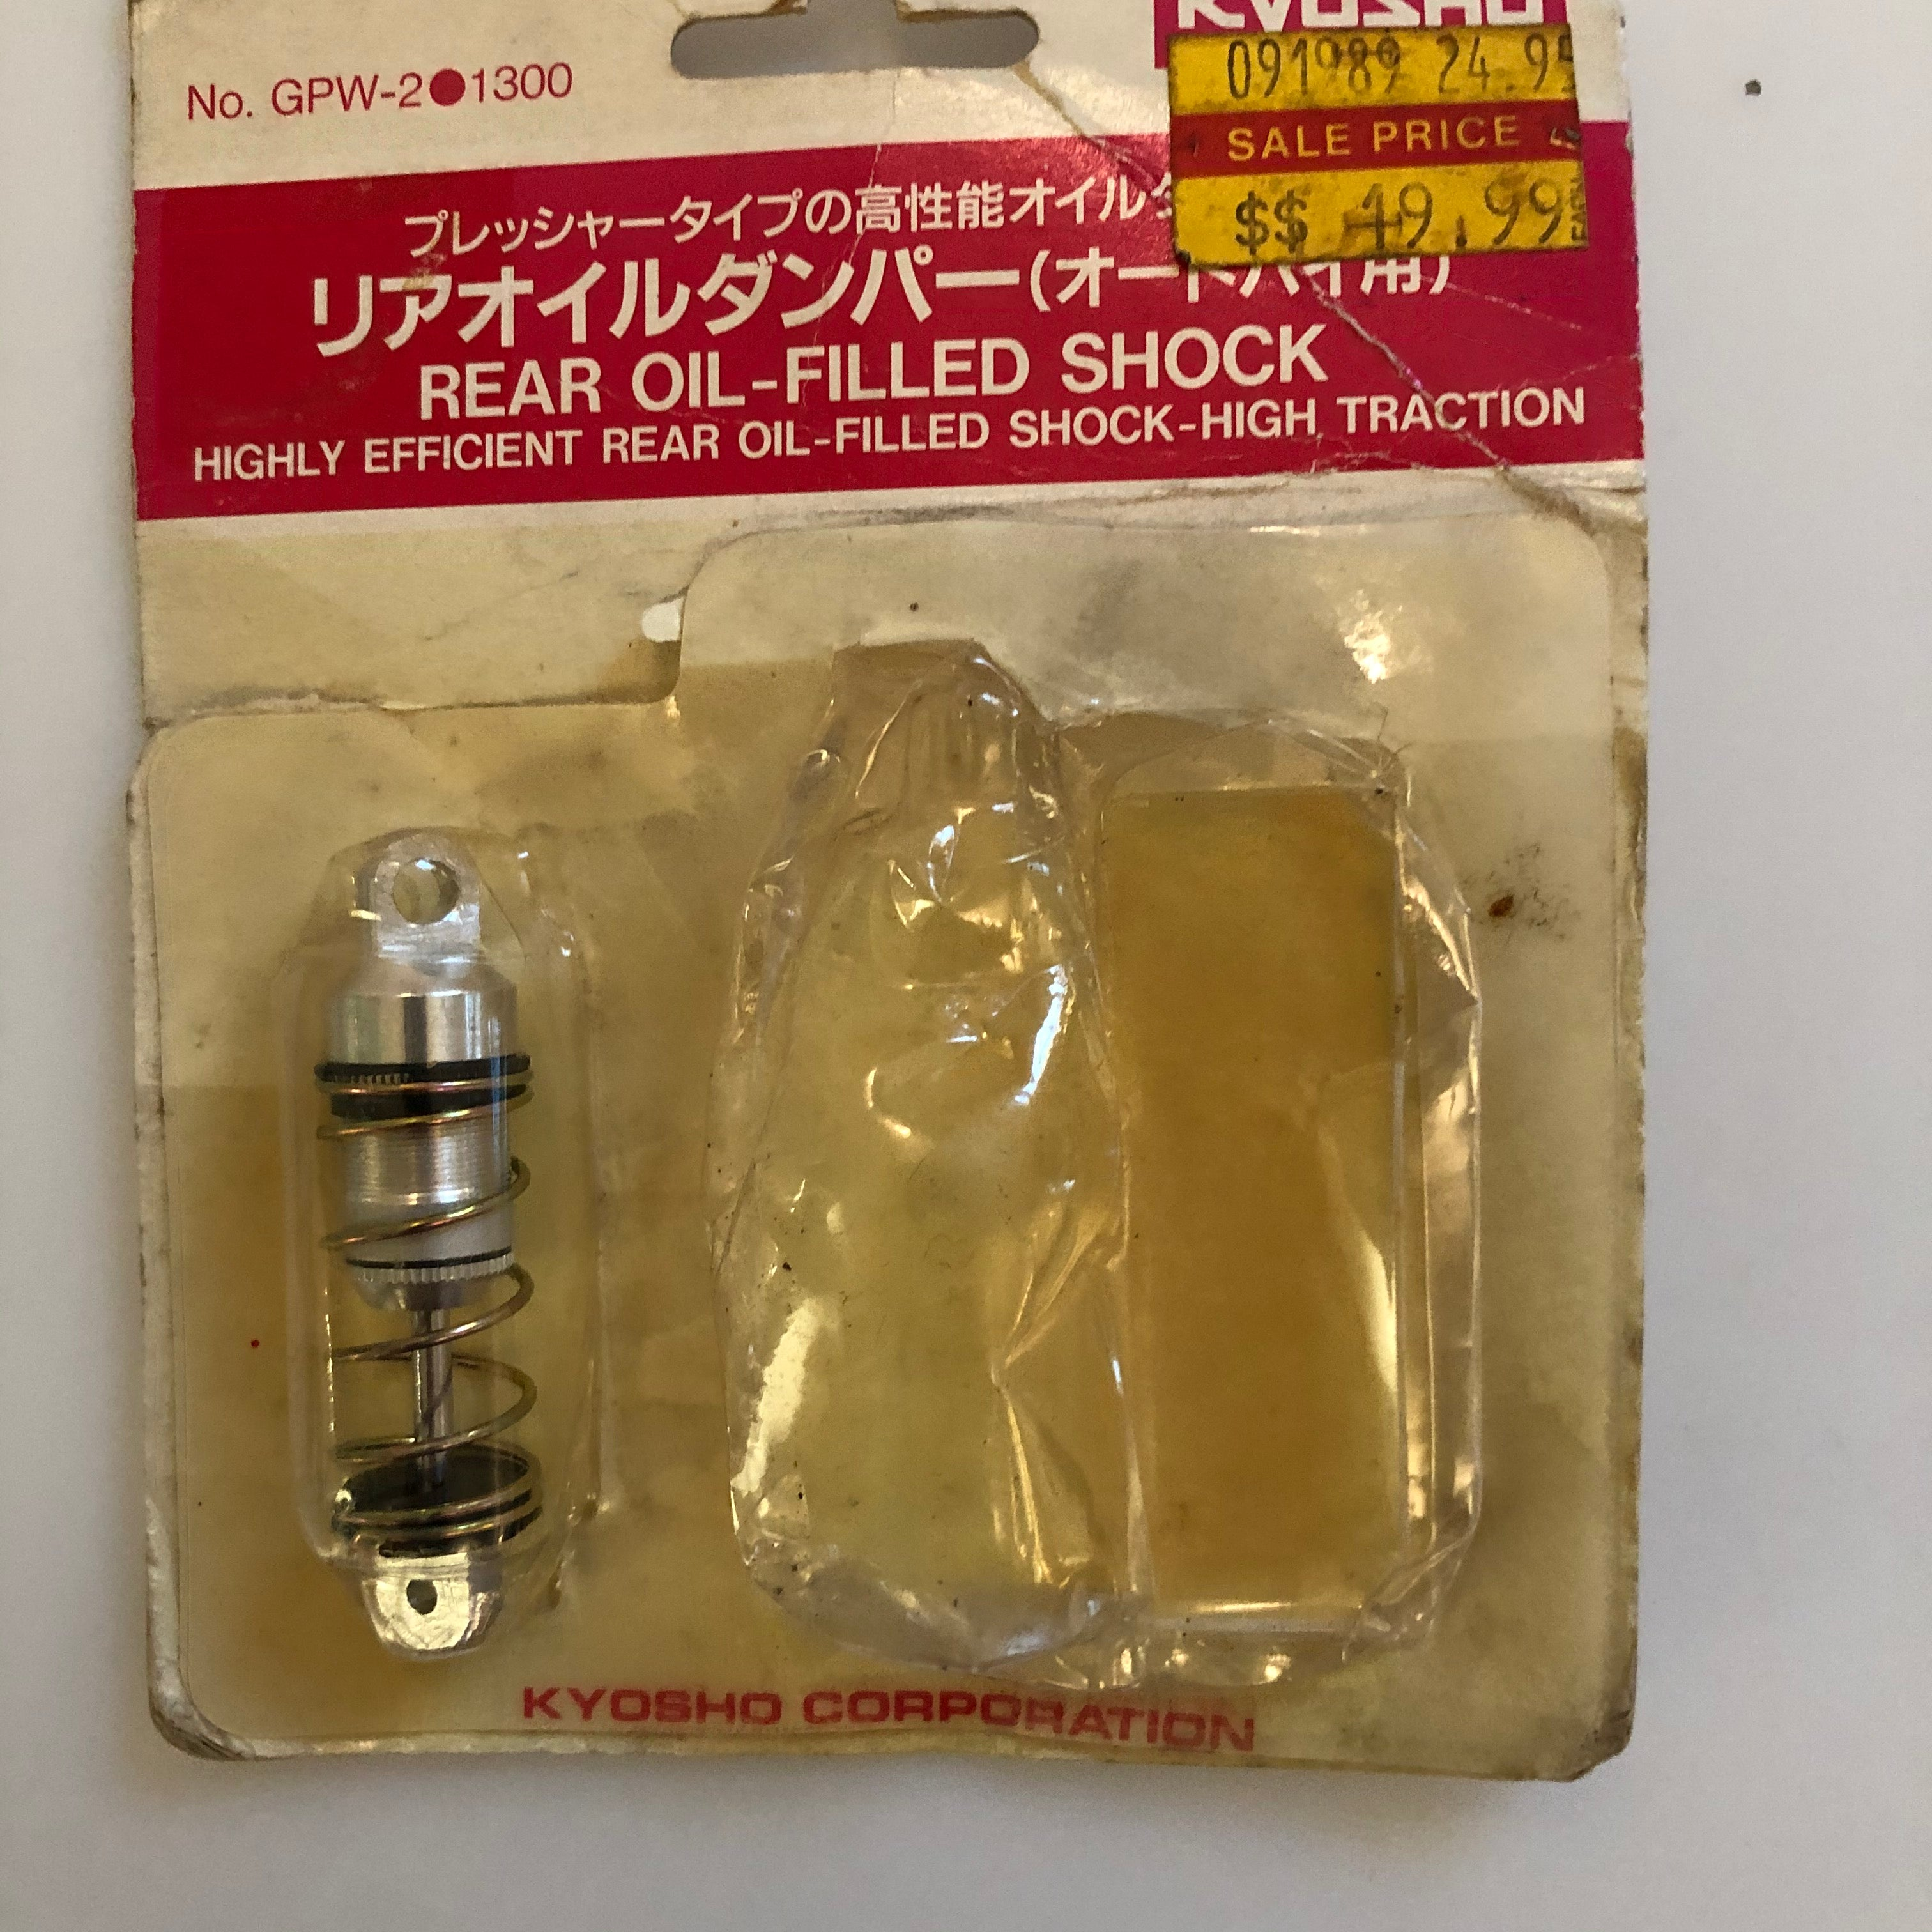 Kyosho GPW-02 Shock-Oil (Rear) Hnya (Shock Only, No Oil or Instructions) KYOC5669